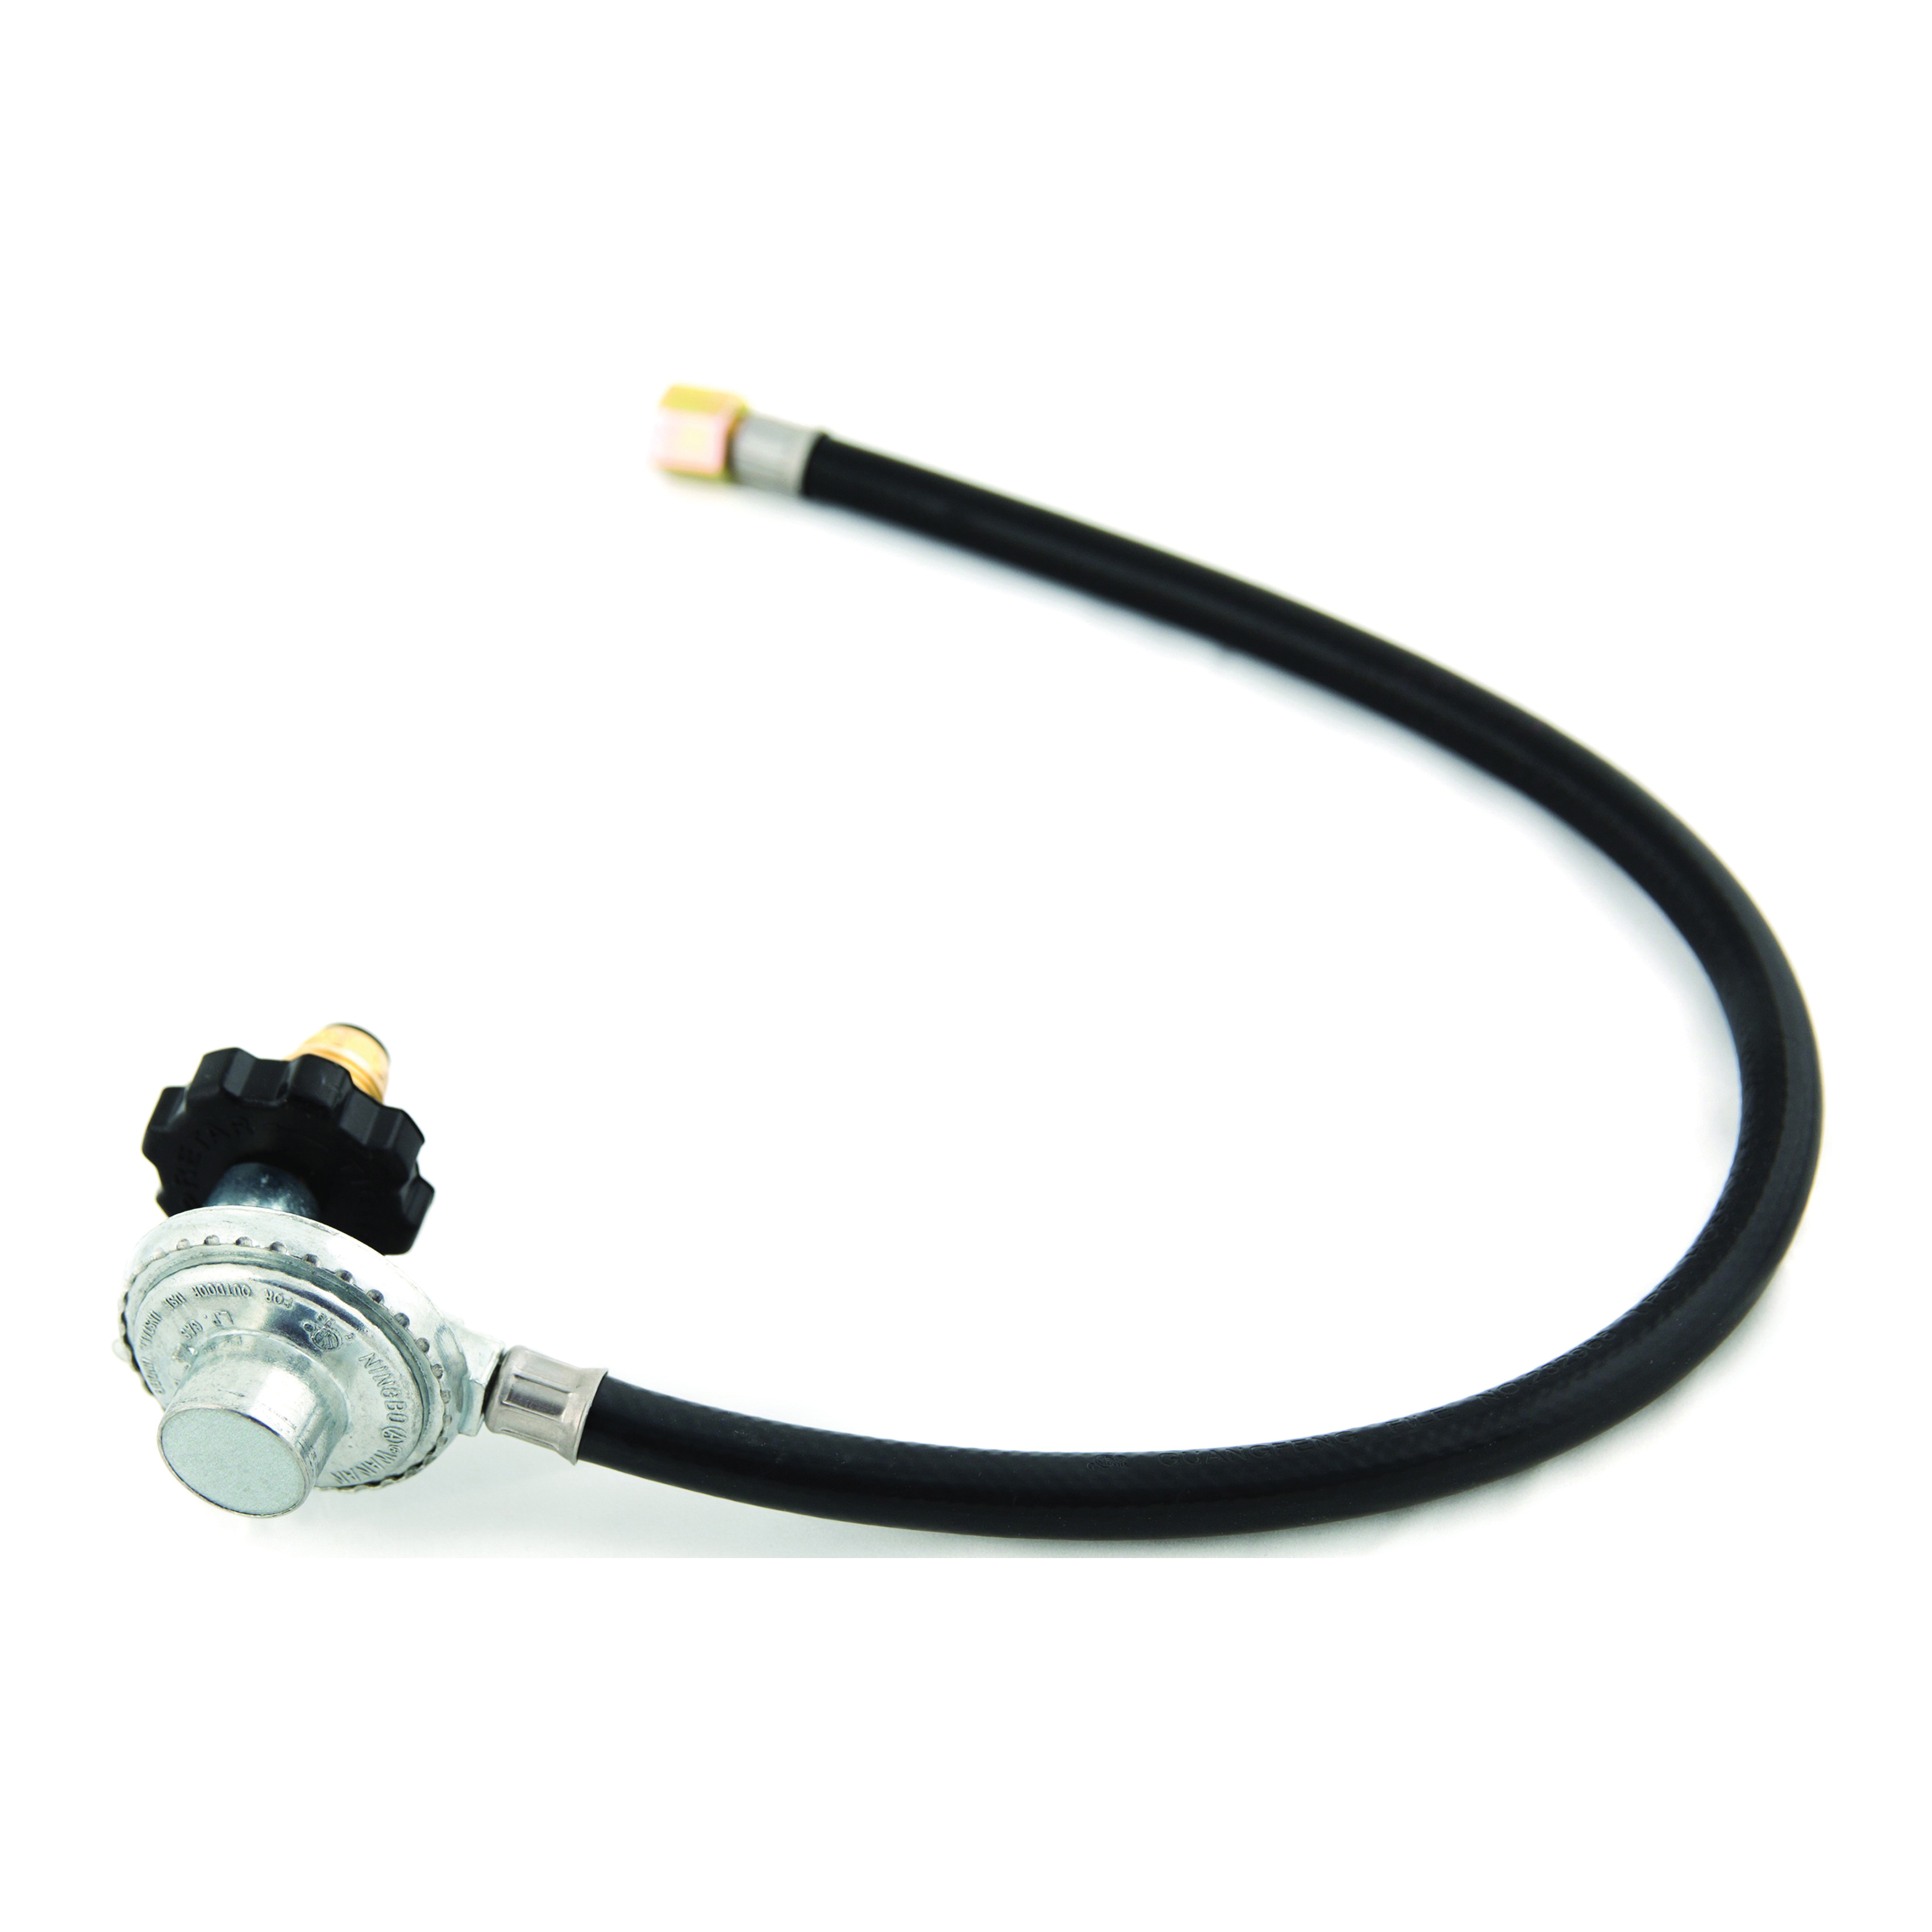 Picture of GrillPro 80024 Hose and Regulator, 24 in L Hose, For: LP Appliances